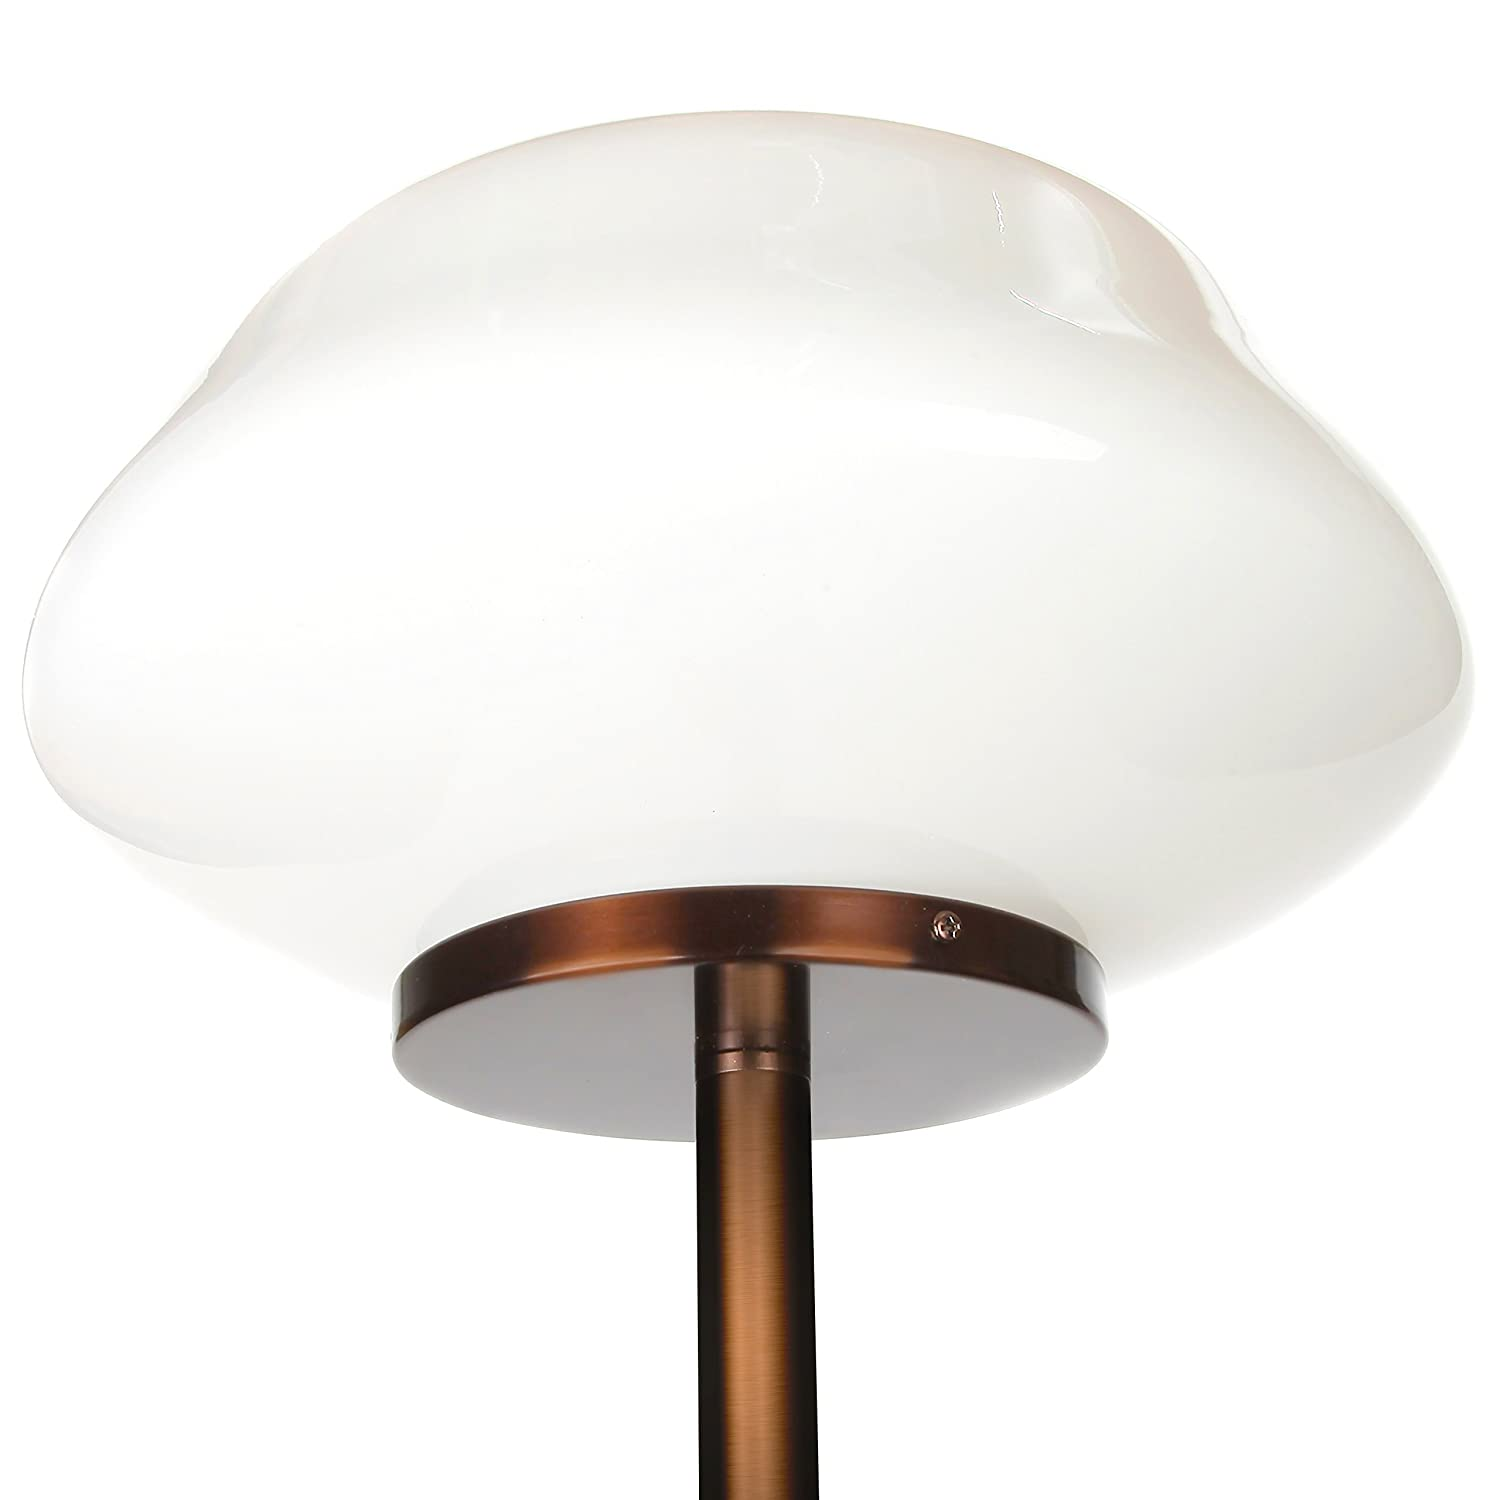 Brightech Aiden LED Floor Lamp Bronze BT-FL-ADN-BRNZ Contemporary Modern Frosted Glass Globe Lamp- Tall Pole Standing Uplight Lamp for Living Room Den Office or Bedroom- Energy Efficient Bulb Included